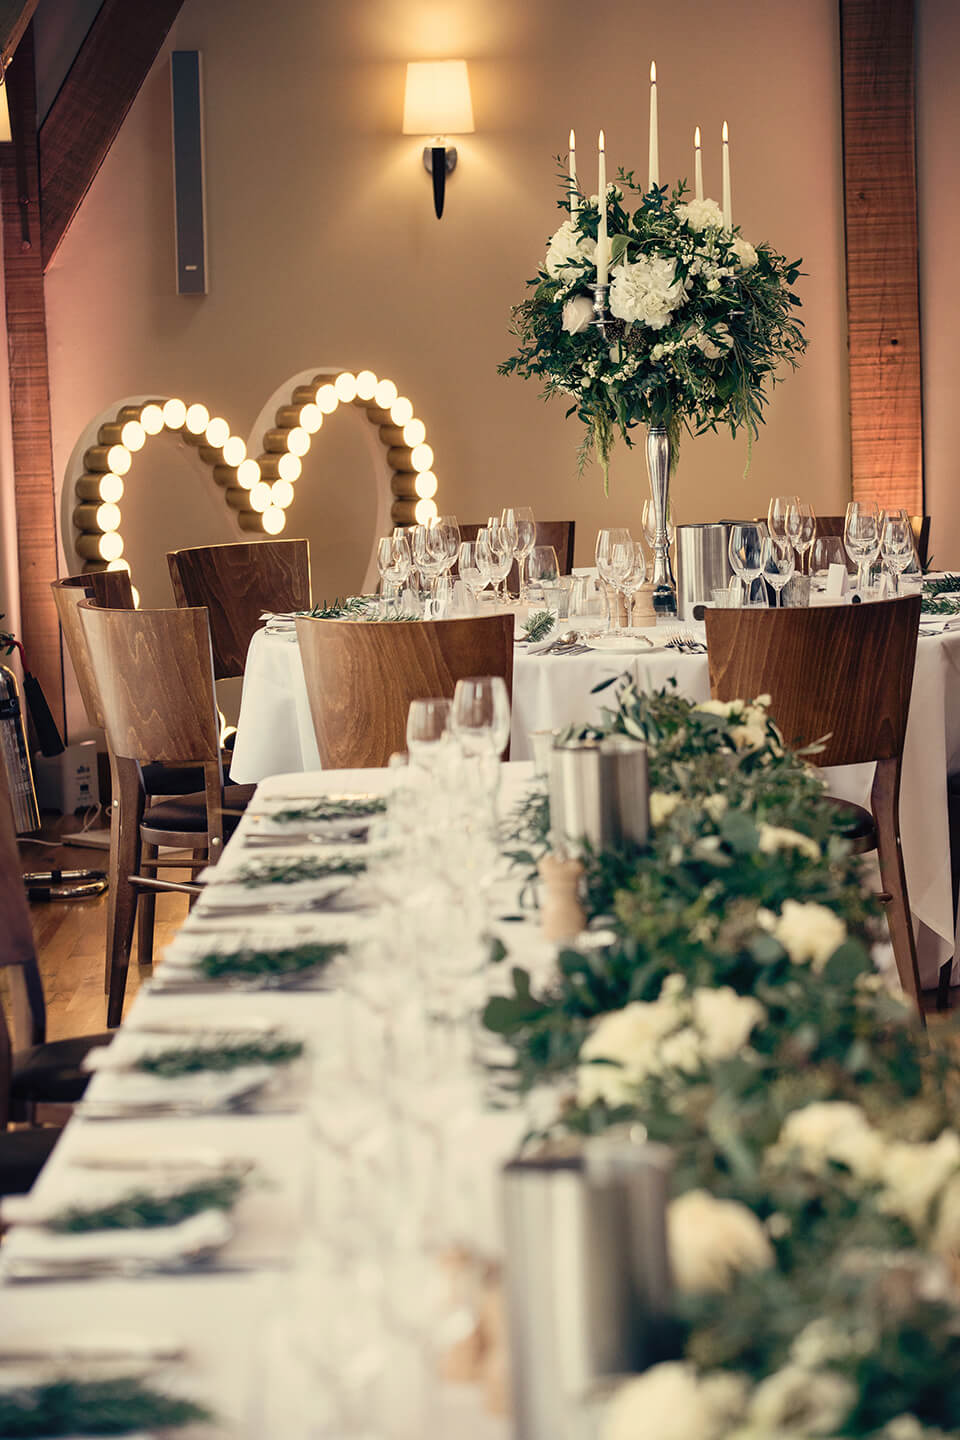 The couple brought the outside in on their wedding day with natural foliage adorning the tables for the wedding breakfast